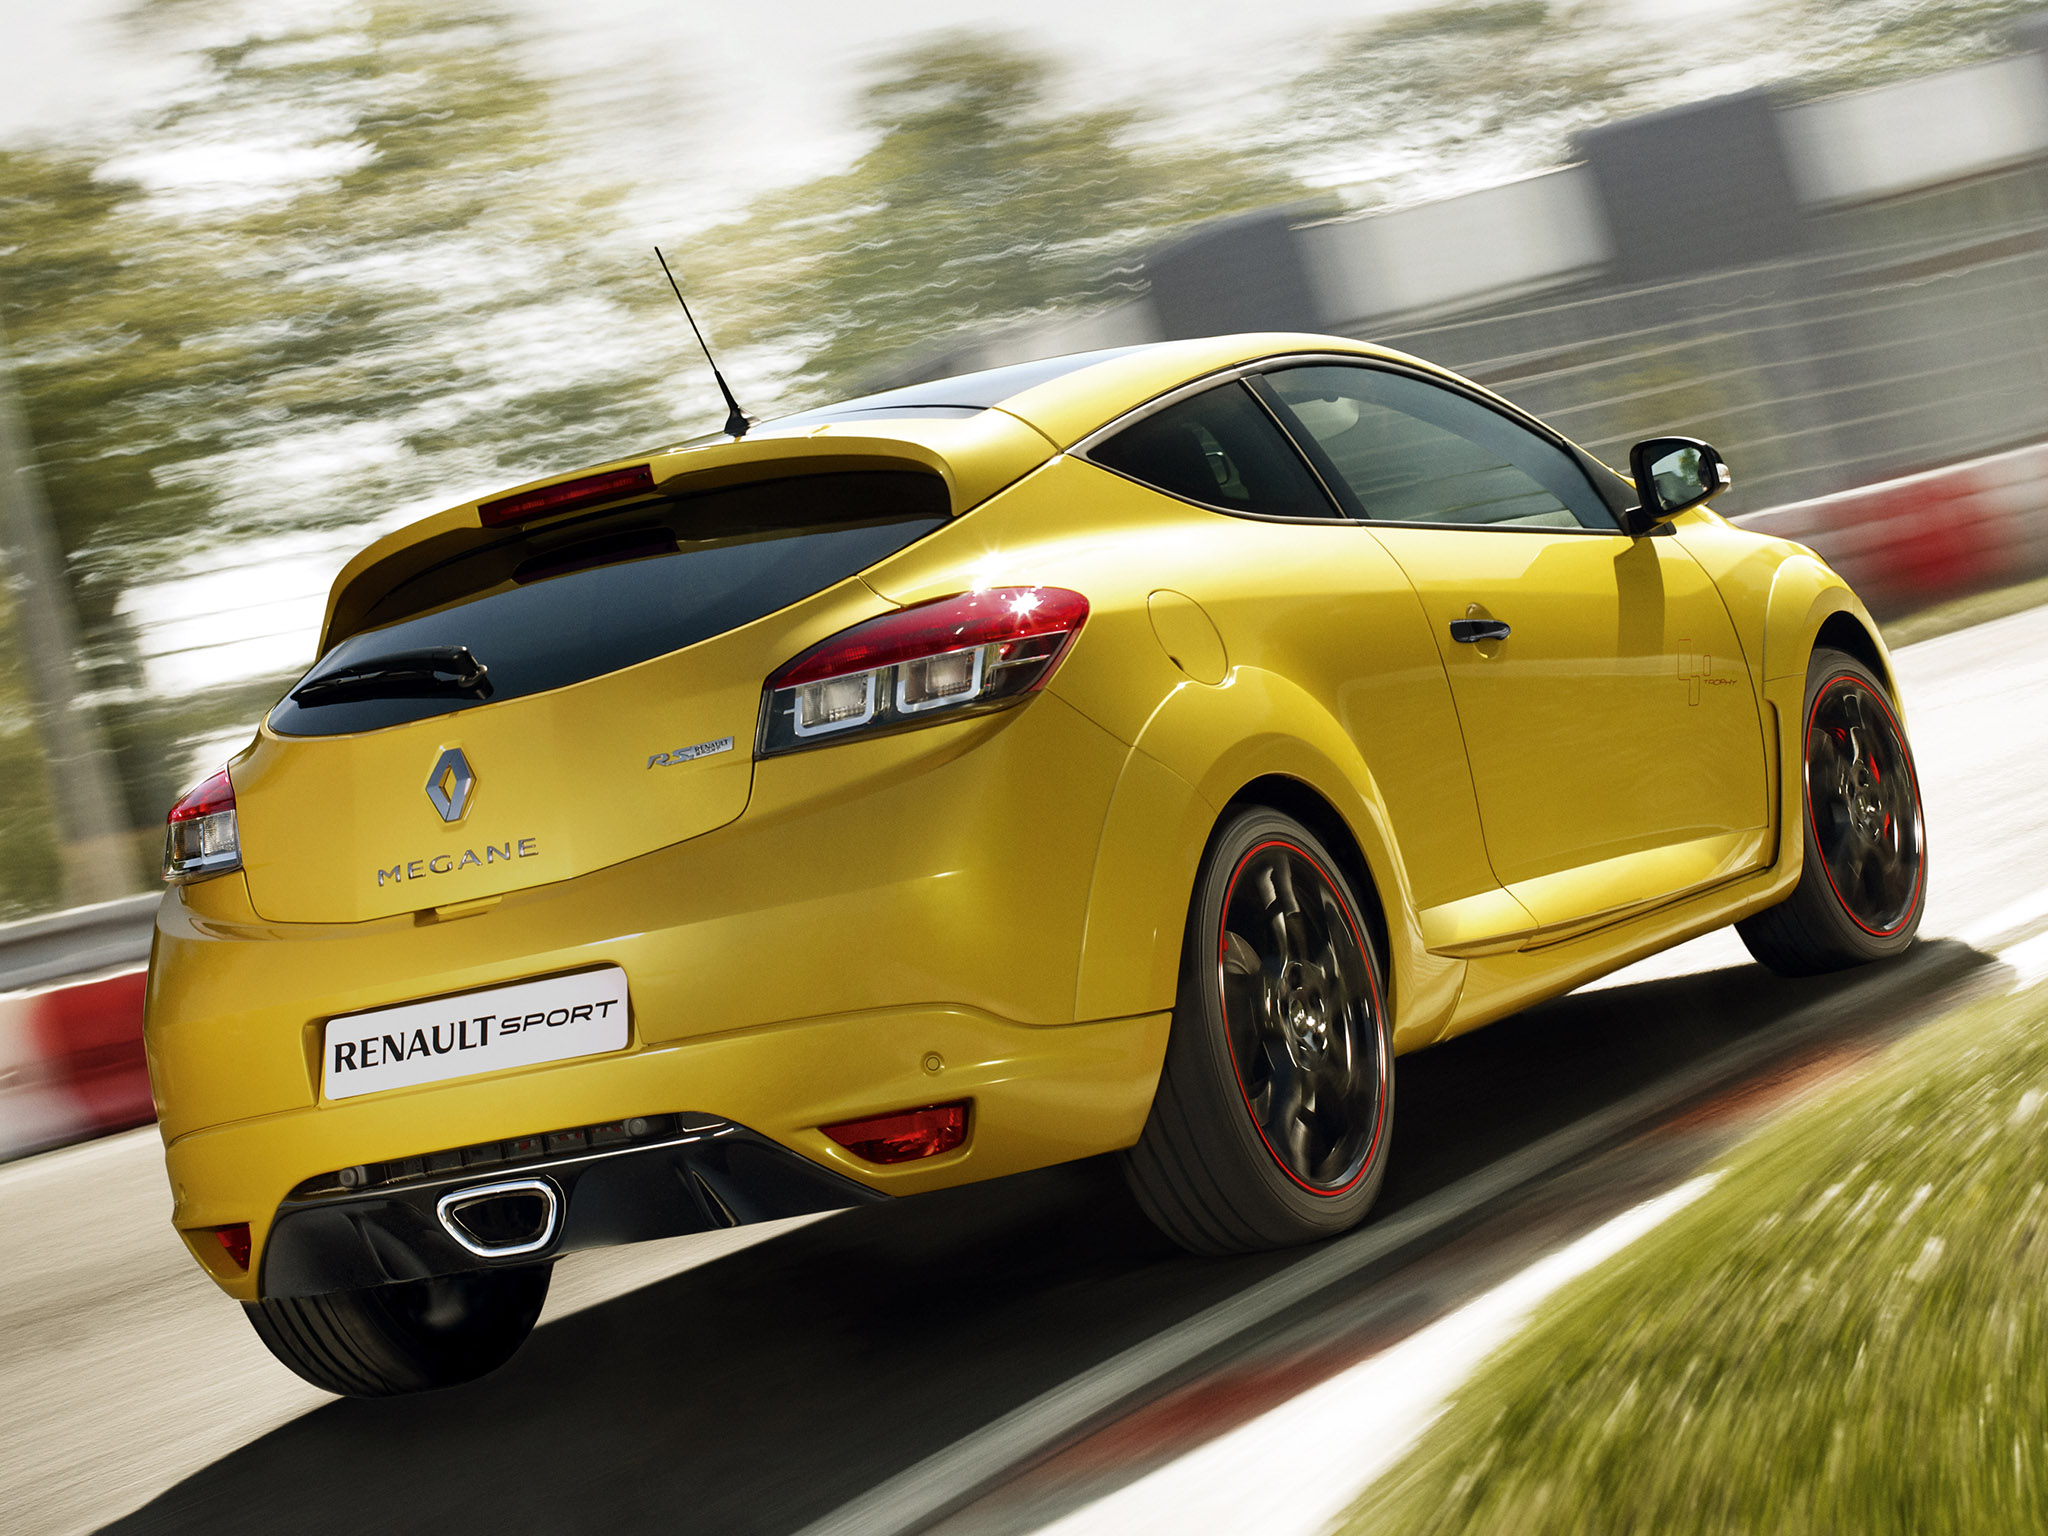 renault megane rs 250 trophy 2011 renault megane rs 250 trophy 2011 photo 03 car in pictures. Black Bedroom Furniture Sets. Home Design Ideas